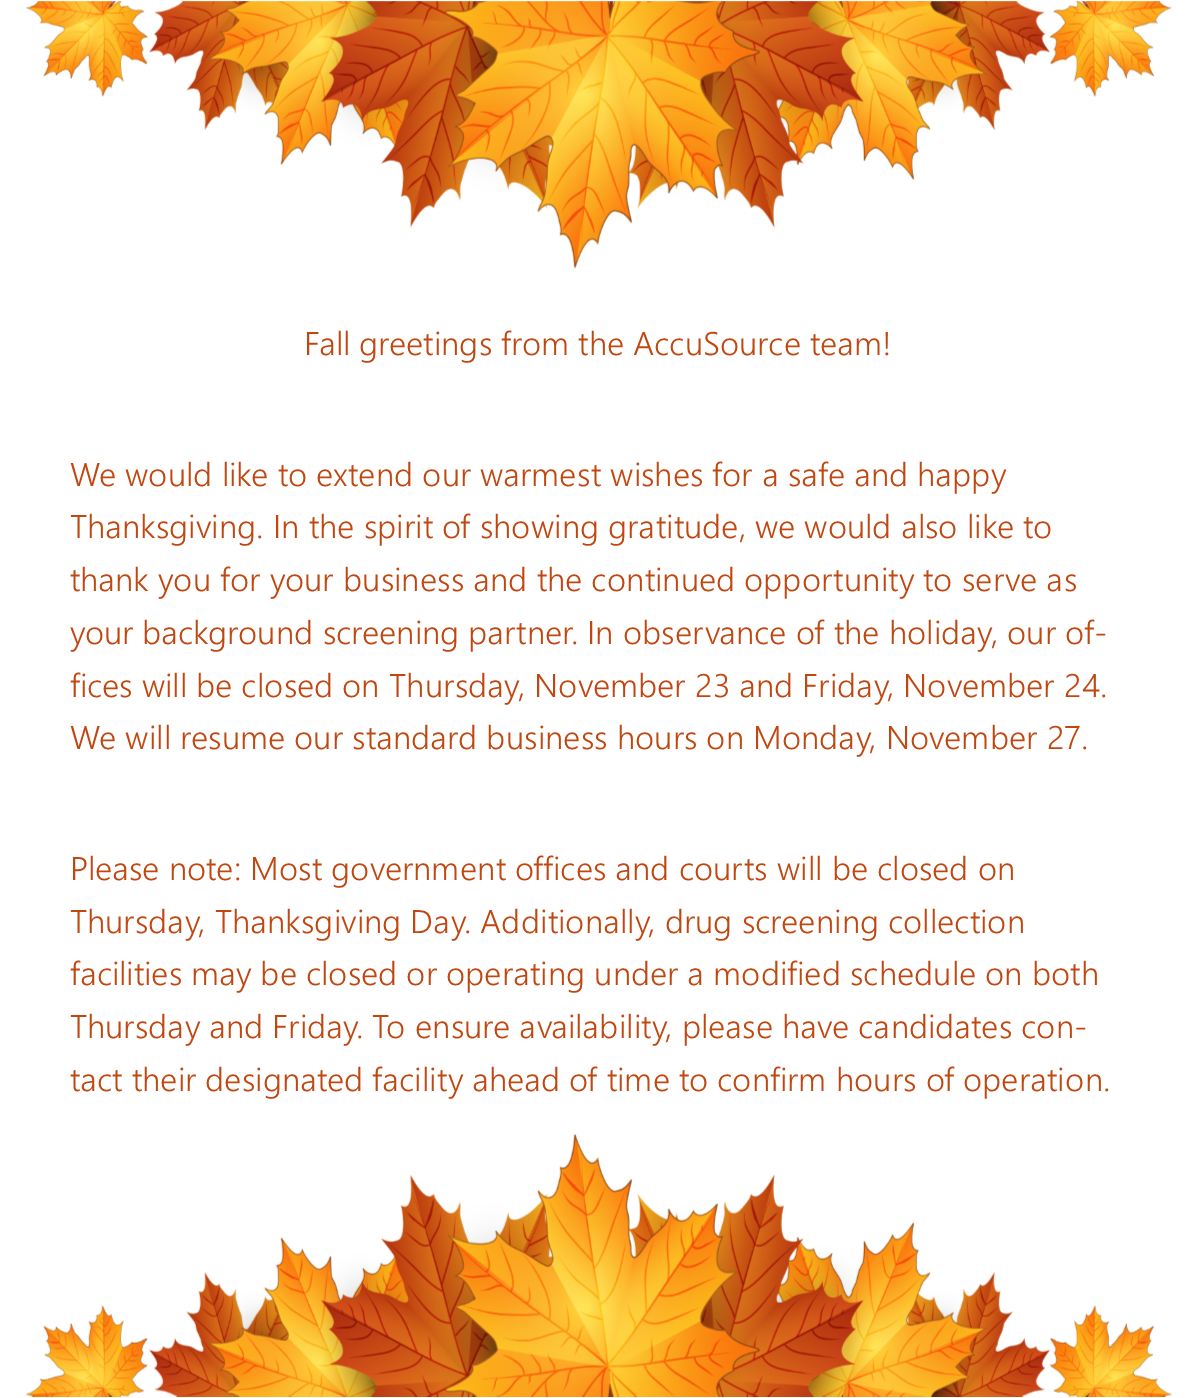 AccuSource 2017 Fall Greeting.png